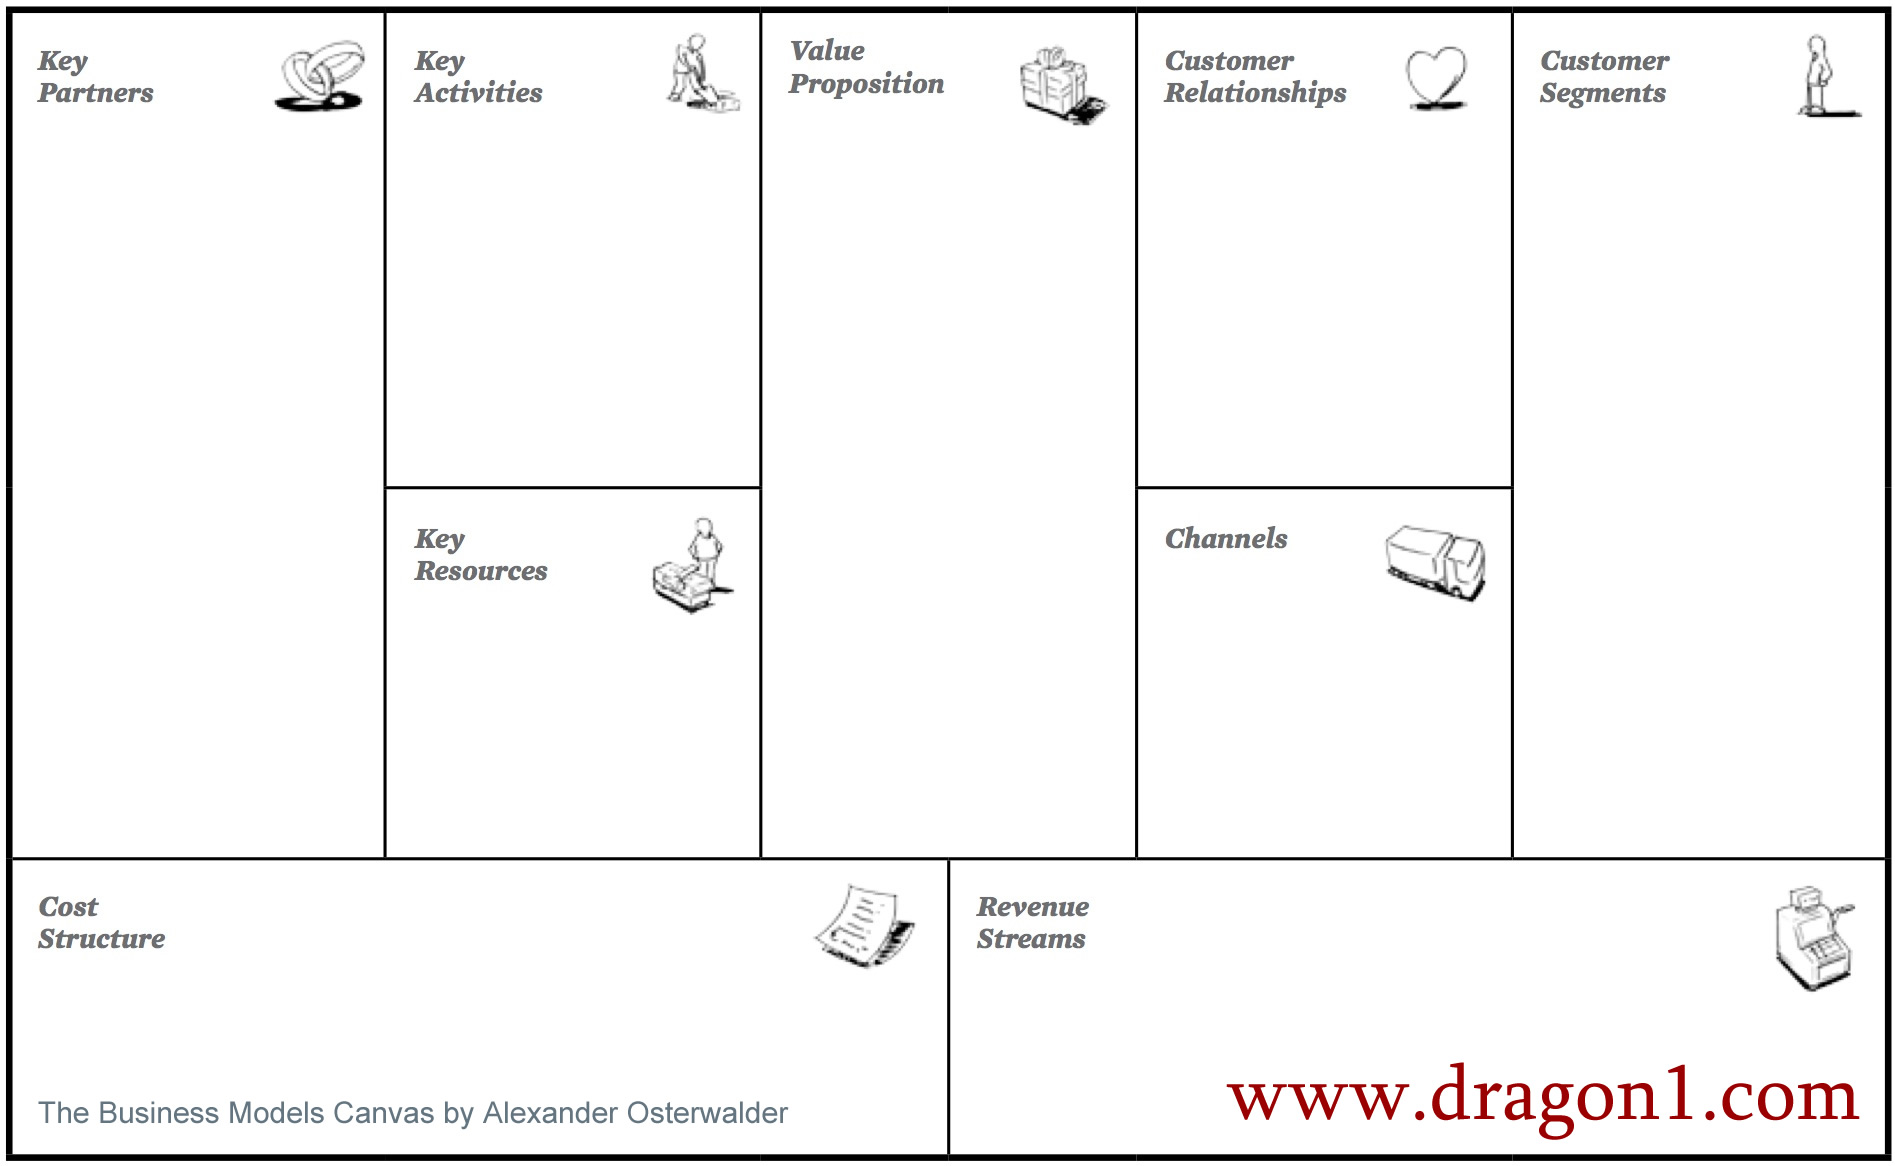 Business model canvas template dragon1 business model canvas template flashek Image collections